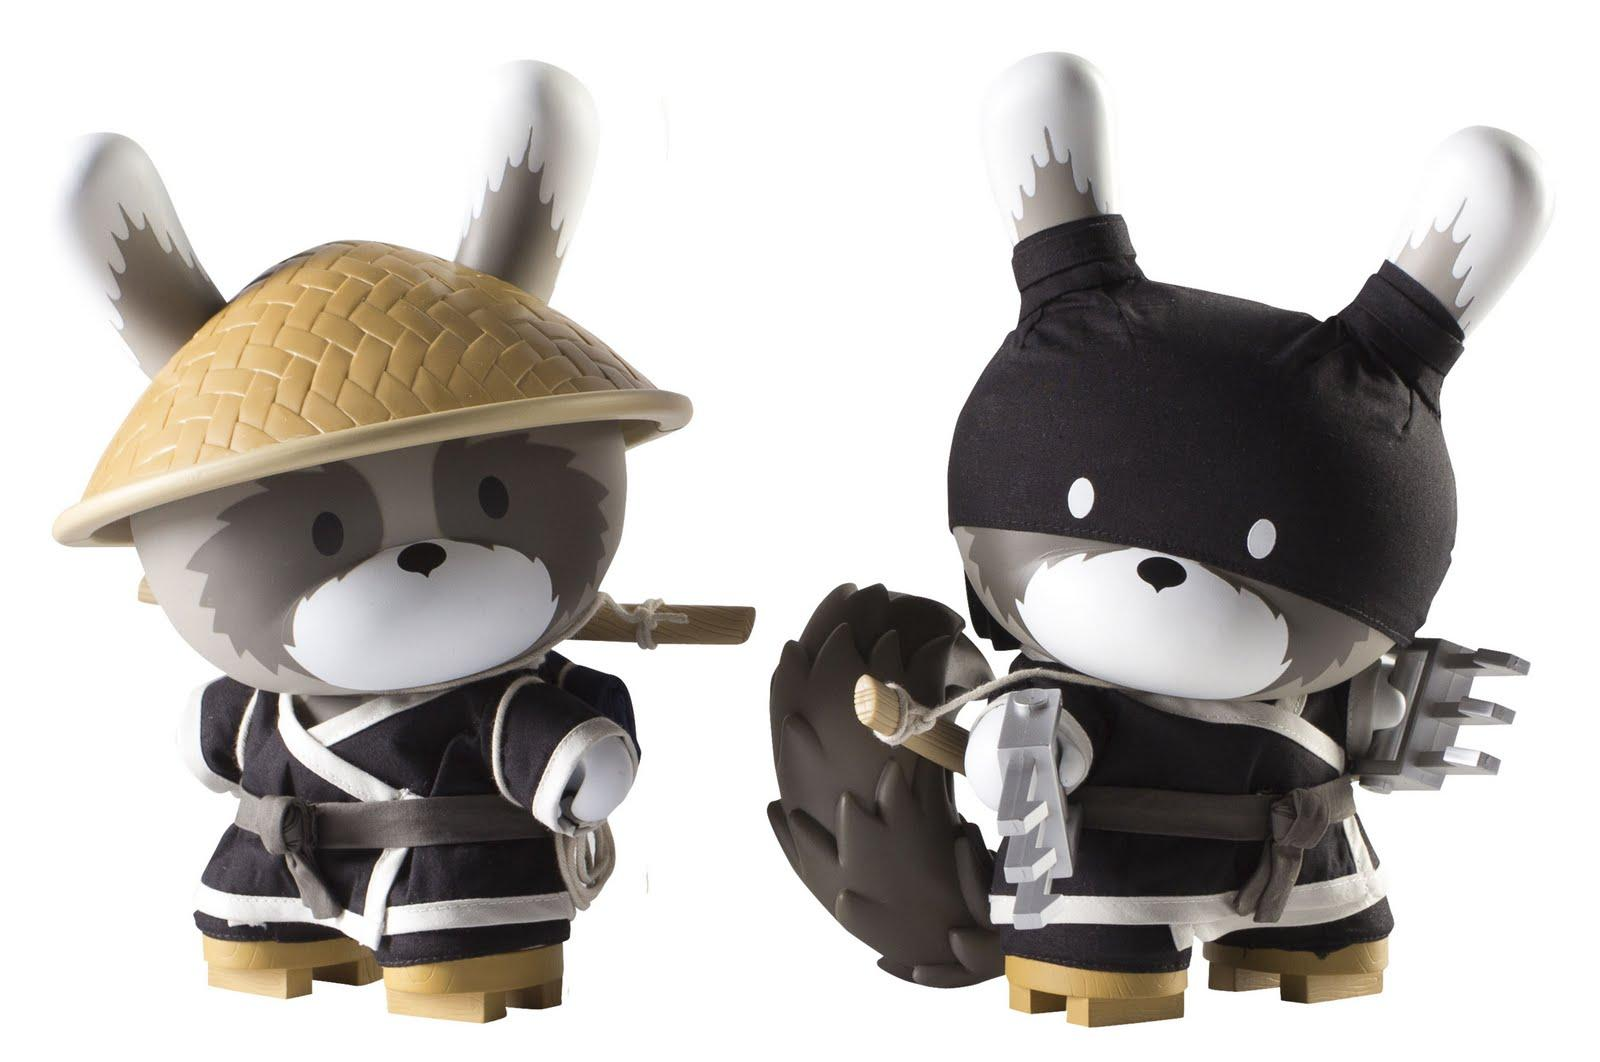 Kidrobot Day & Night Black Raku 8 Inch Dunnys by Huck Gee | IAMFATTERTHANYOU.COM